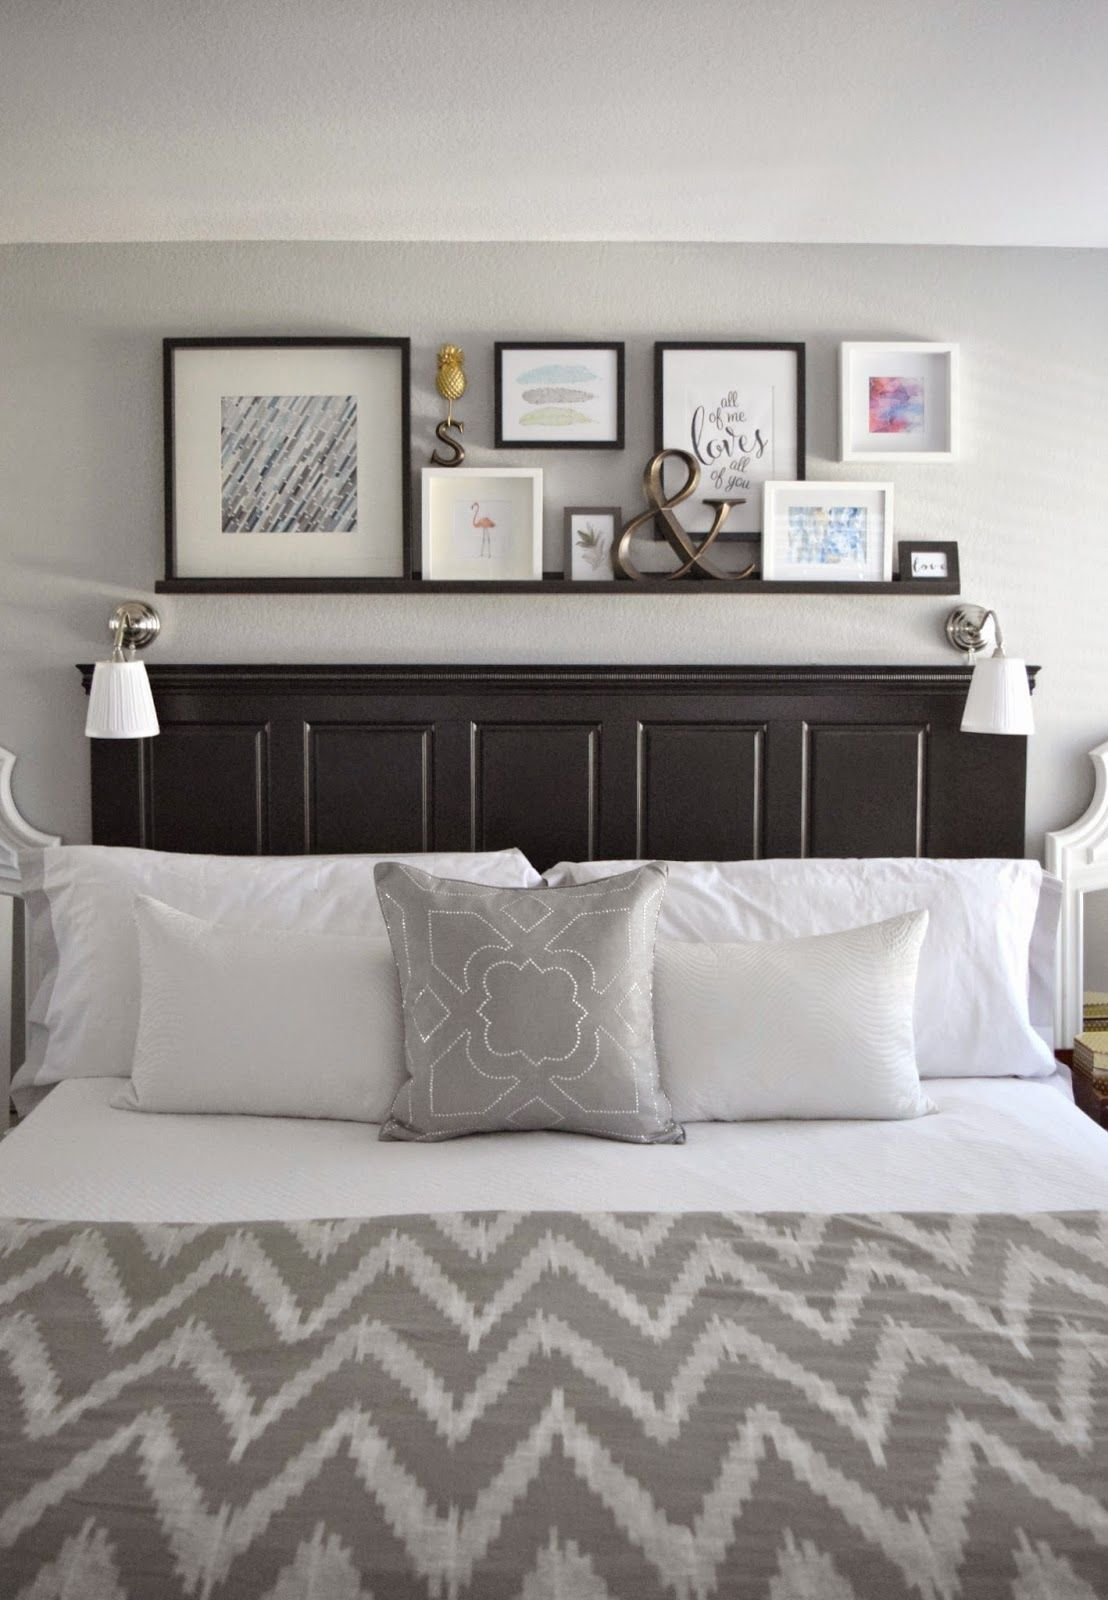 Mademake home tour bedroomsbedslinens pinterest bedrooms